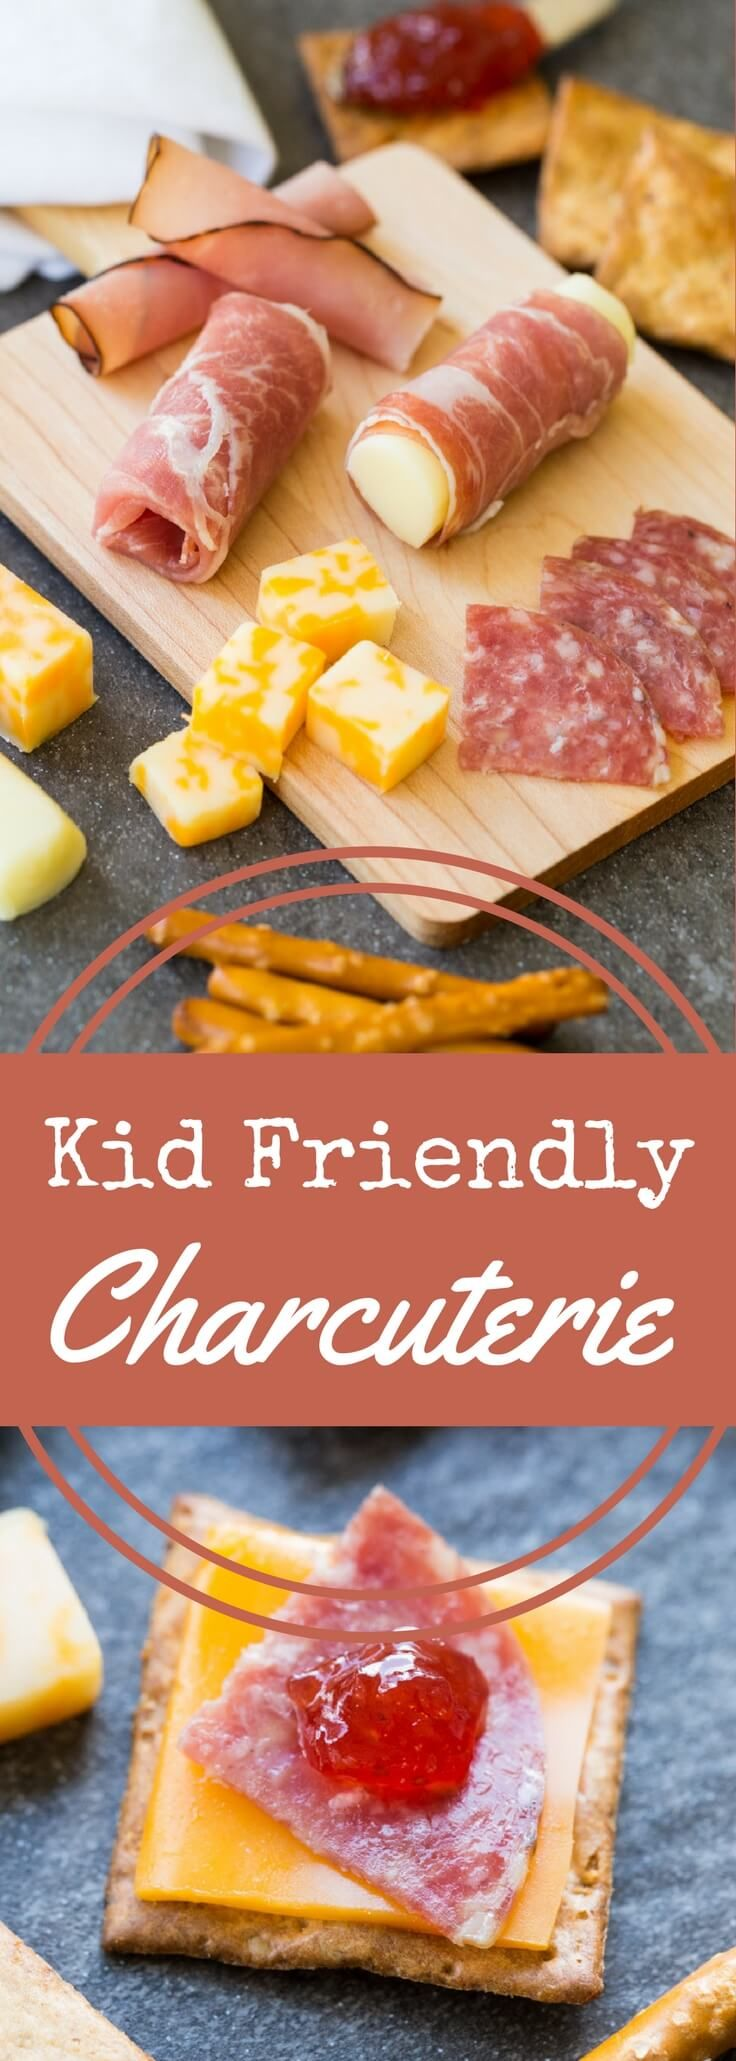 Pack a charcuterie plate in a lunch box with these kid-friendly options. Pair meats, cheeses, spreads, and crackers for your little one to enjoy. via @recipeforperfec @organicvalley #GetCheesy AD